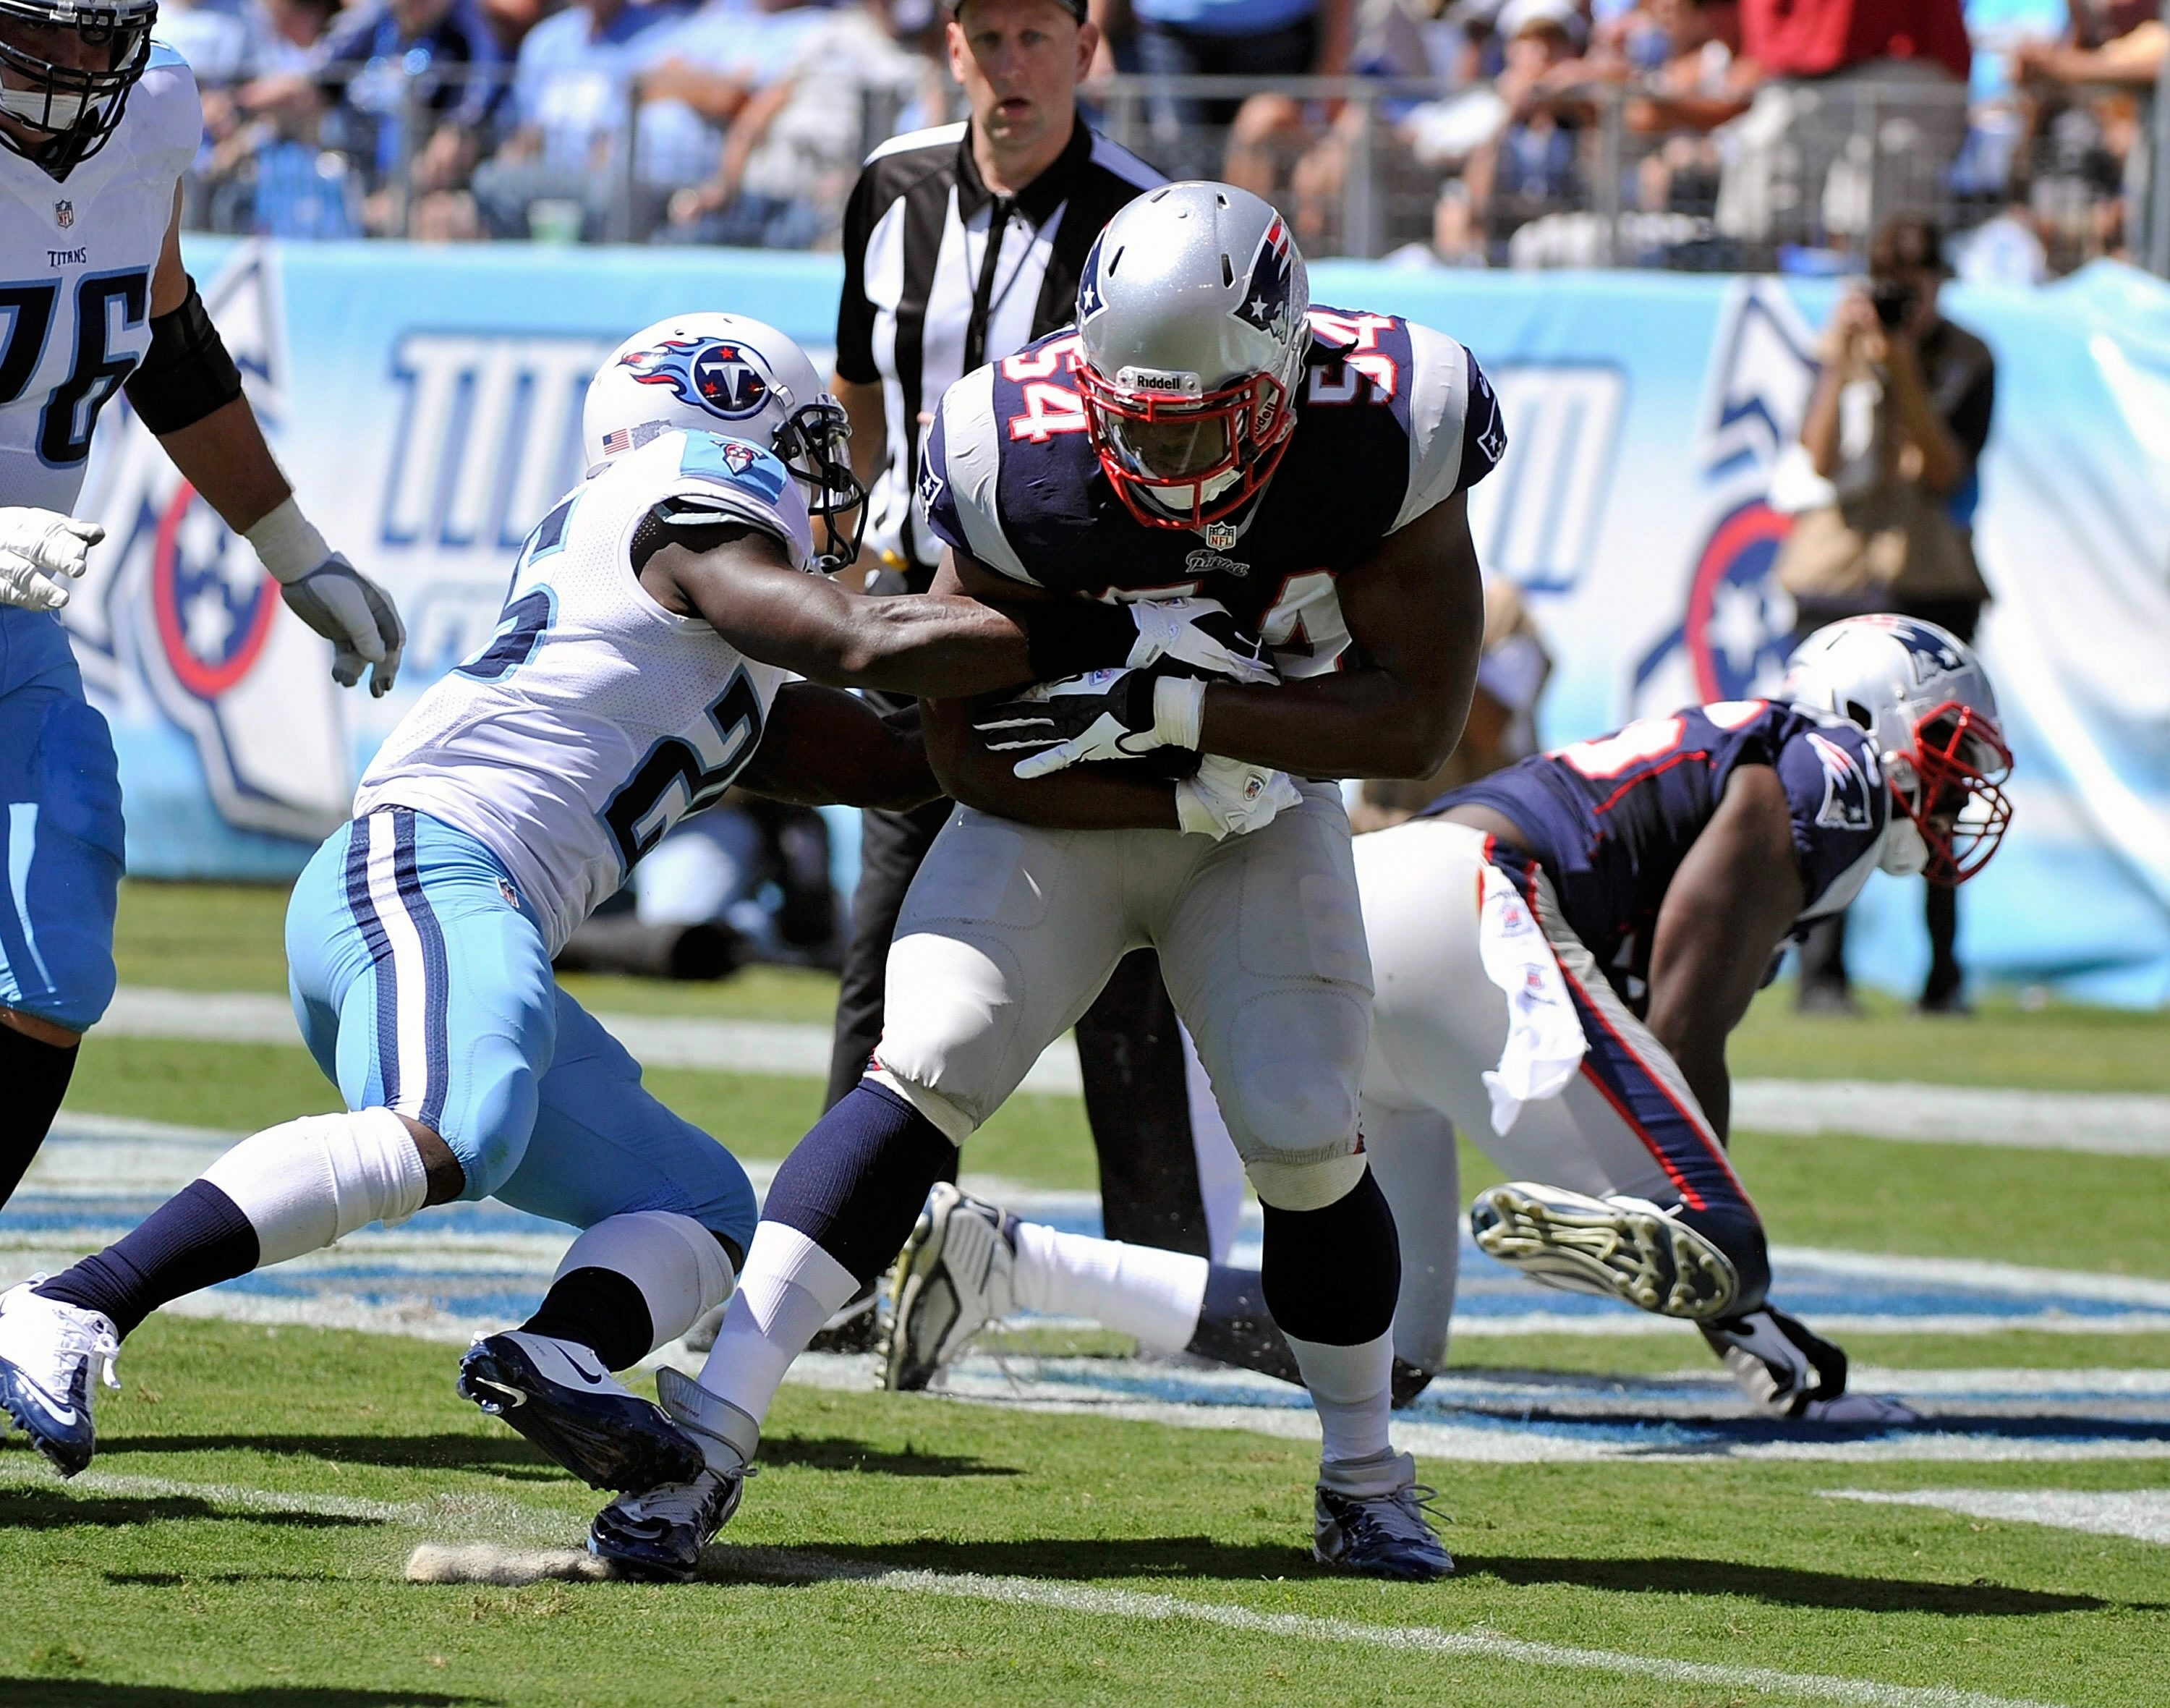 Dont'a Hightower #54 of the New England Patriots scores a touchdown after recovering a fumble against the Tennessee Titans during their season opener in Nashville.  (Photo by Frederick Breedon/Getty Images)